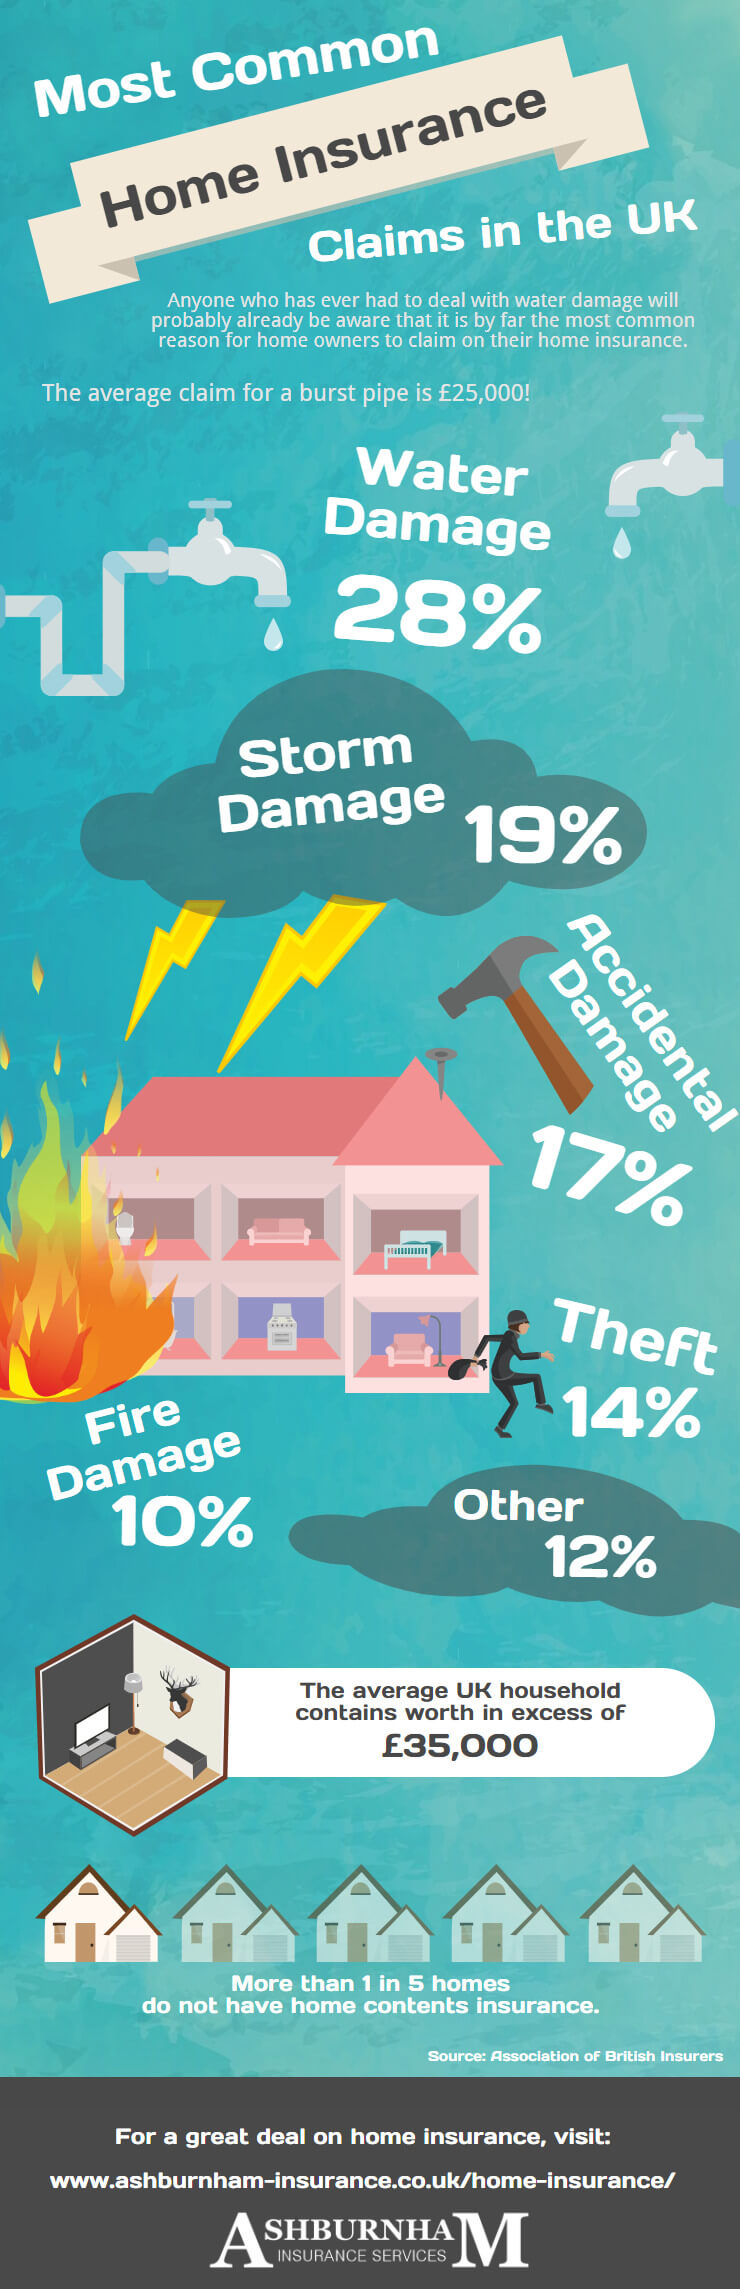 Most Common Home Insurance Claims Infographic